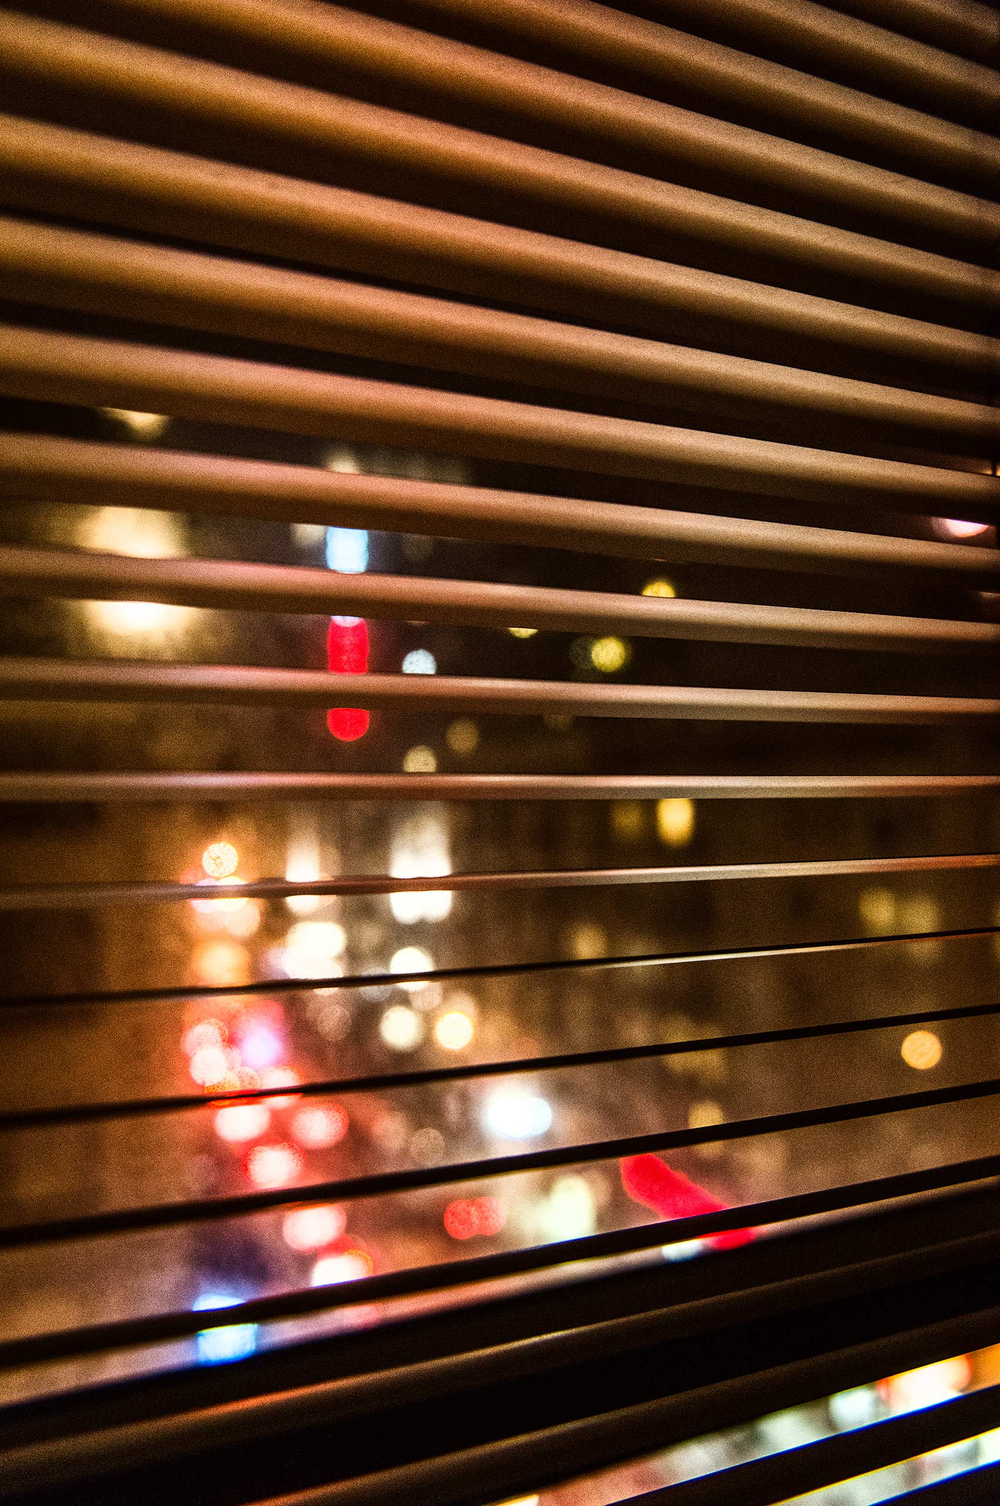 Window-Blinds-Citylights-Tenderloin-SanFransisco-HenrikOlundPhotography.jpg